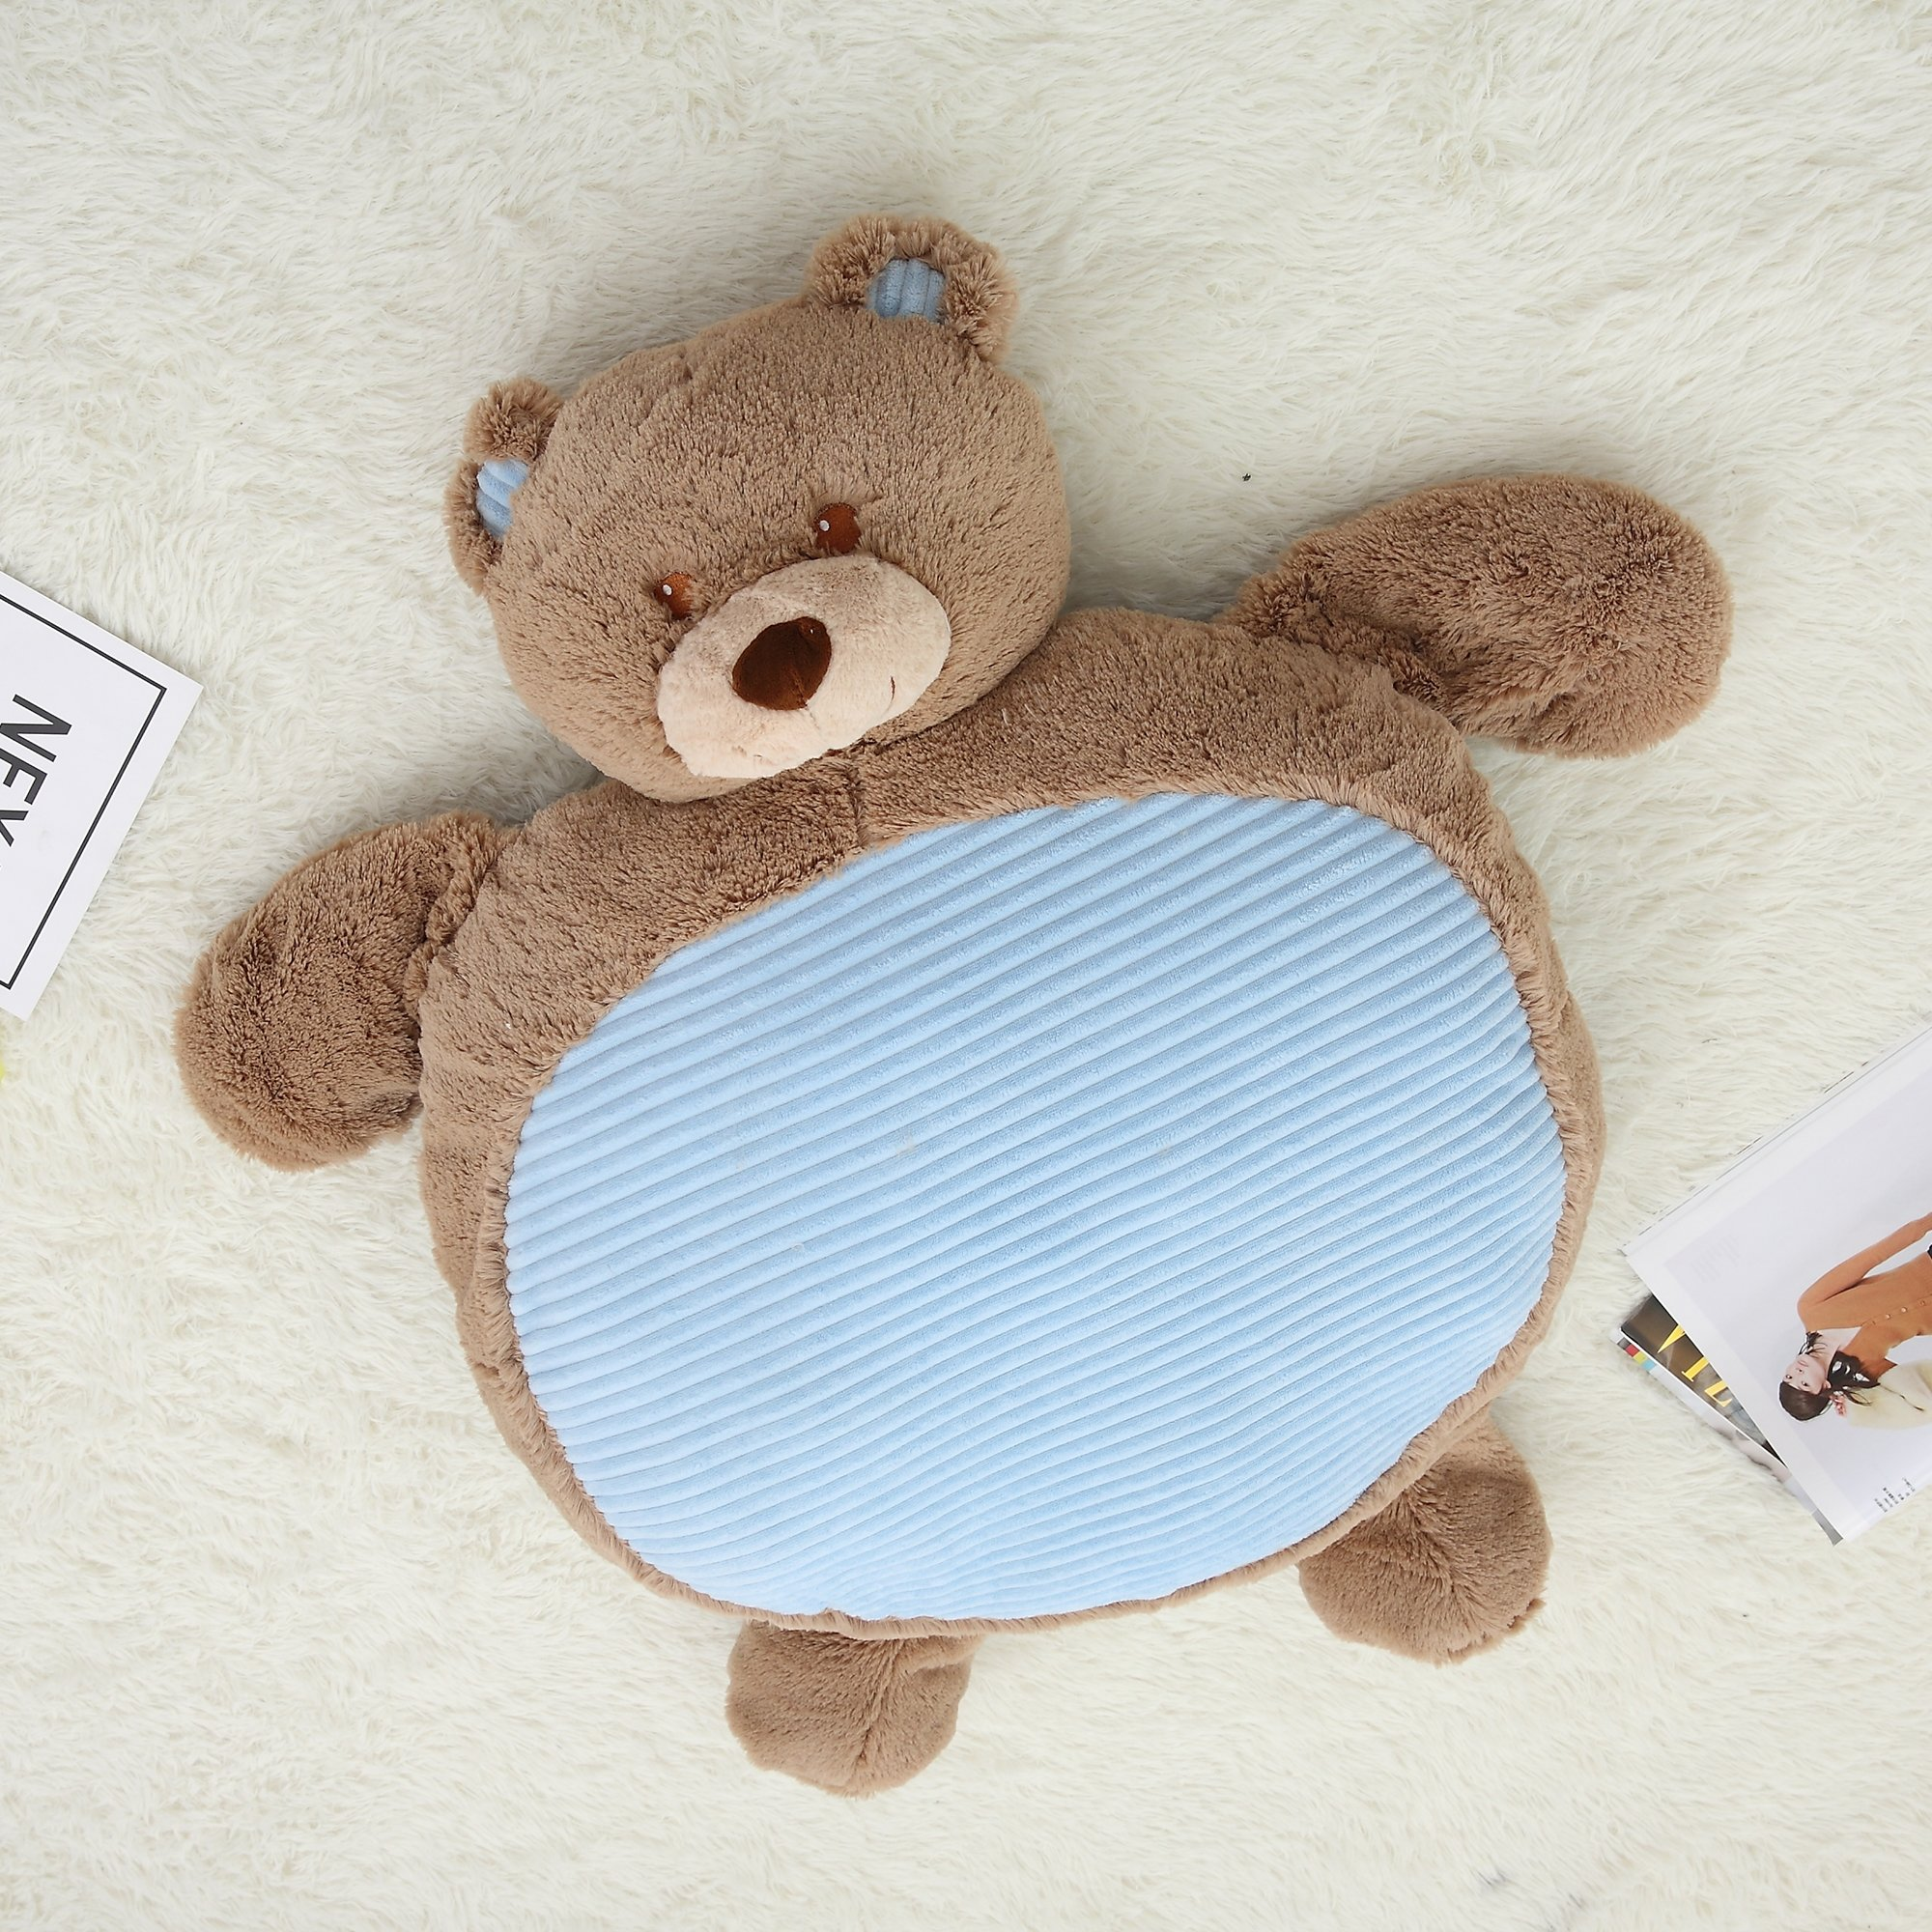 Vercart Cute Cuddly Stuffed Animals Cushions For Your Children Play on The Floor Brown 31x24x5 Inches